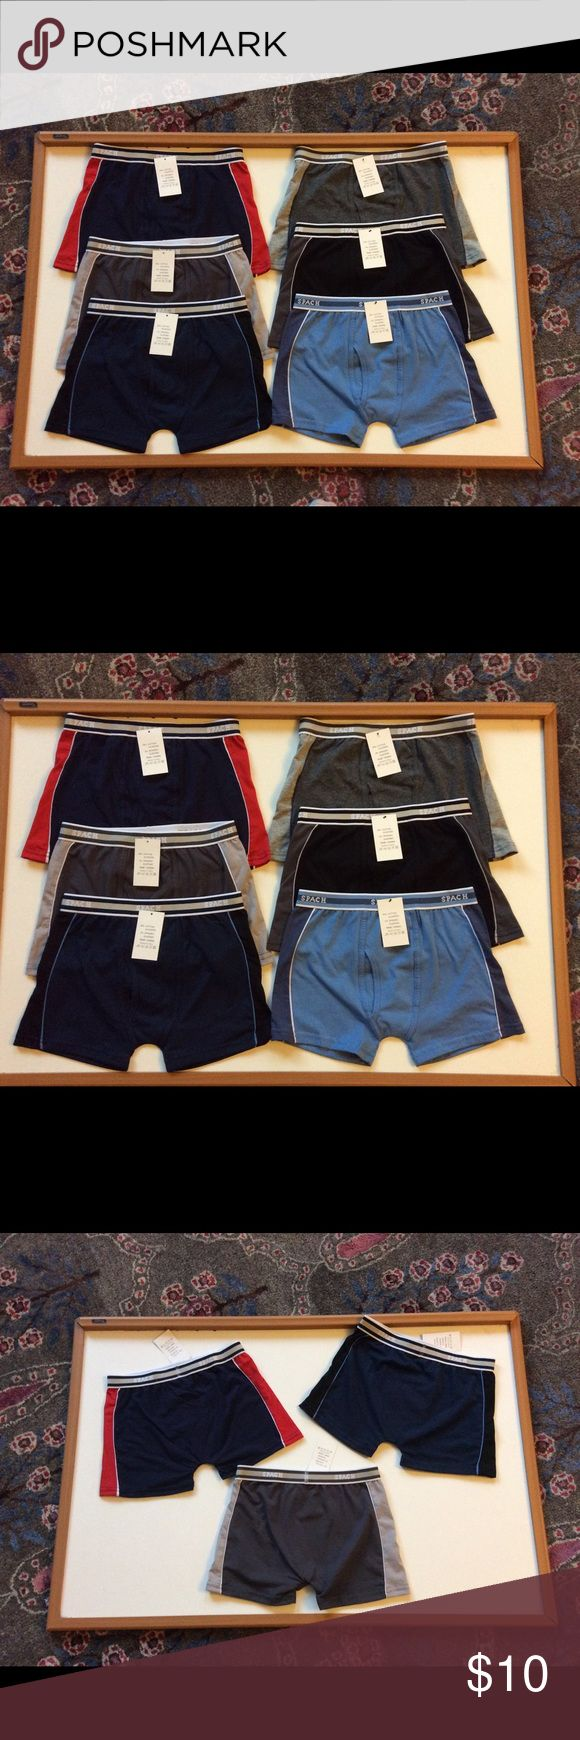 3 Quality Boy's SPACH BOXERS 6T 6T Great quality boy's boxers . Spanx brand which sells on amazon for way more! These will quickly become your son's favorites.  You get 3 for $10 with FREE SHIPPING.   Great deal Spach Accessories Underwear